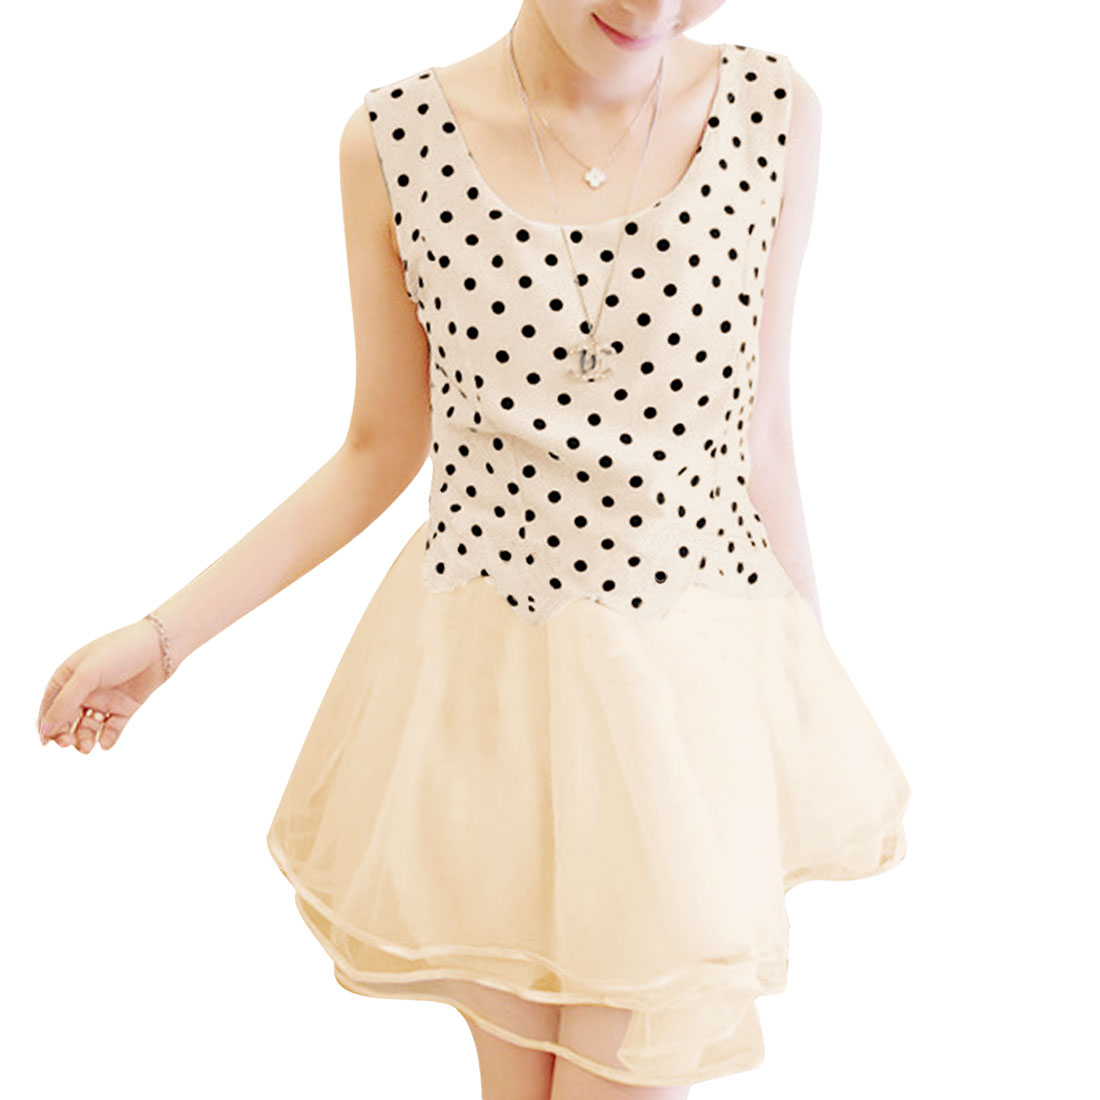 Ladies Round Neck Sleeveless Dots Flounced Hem Dress Beige XS